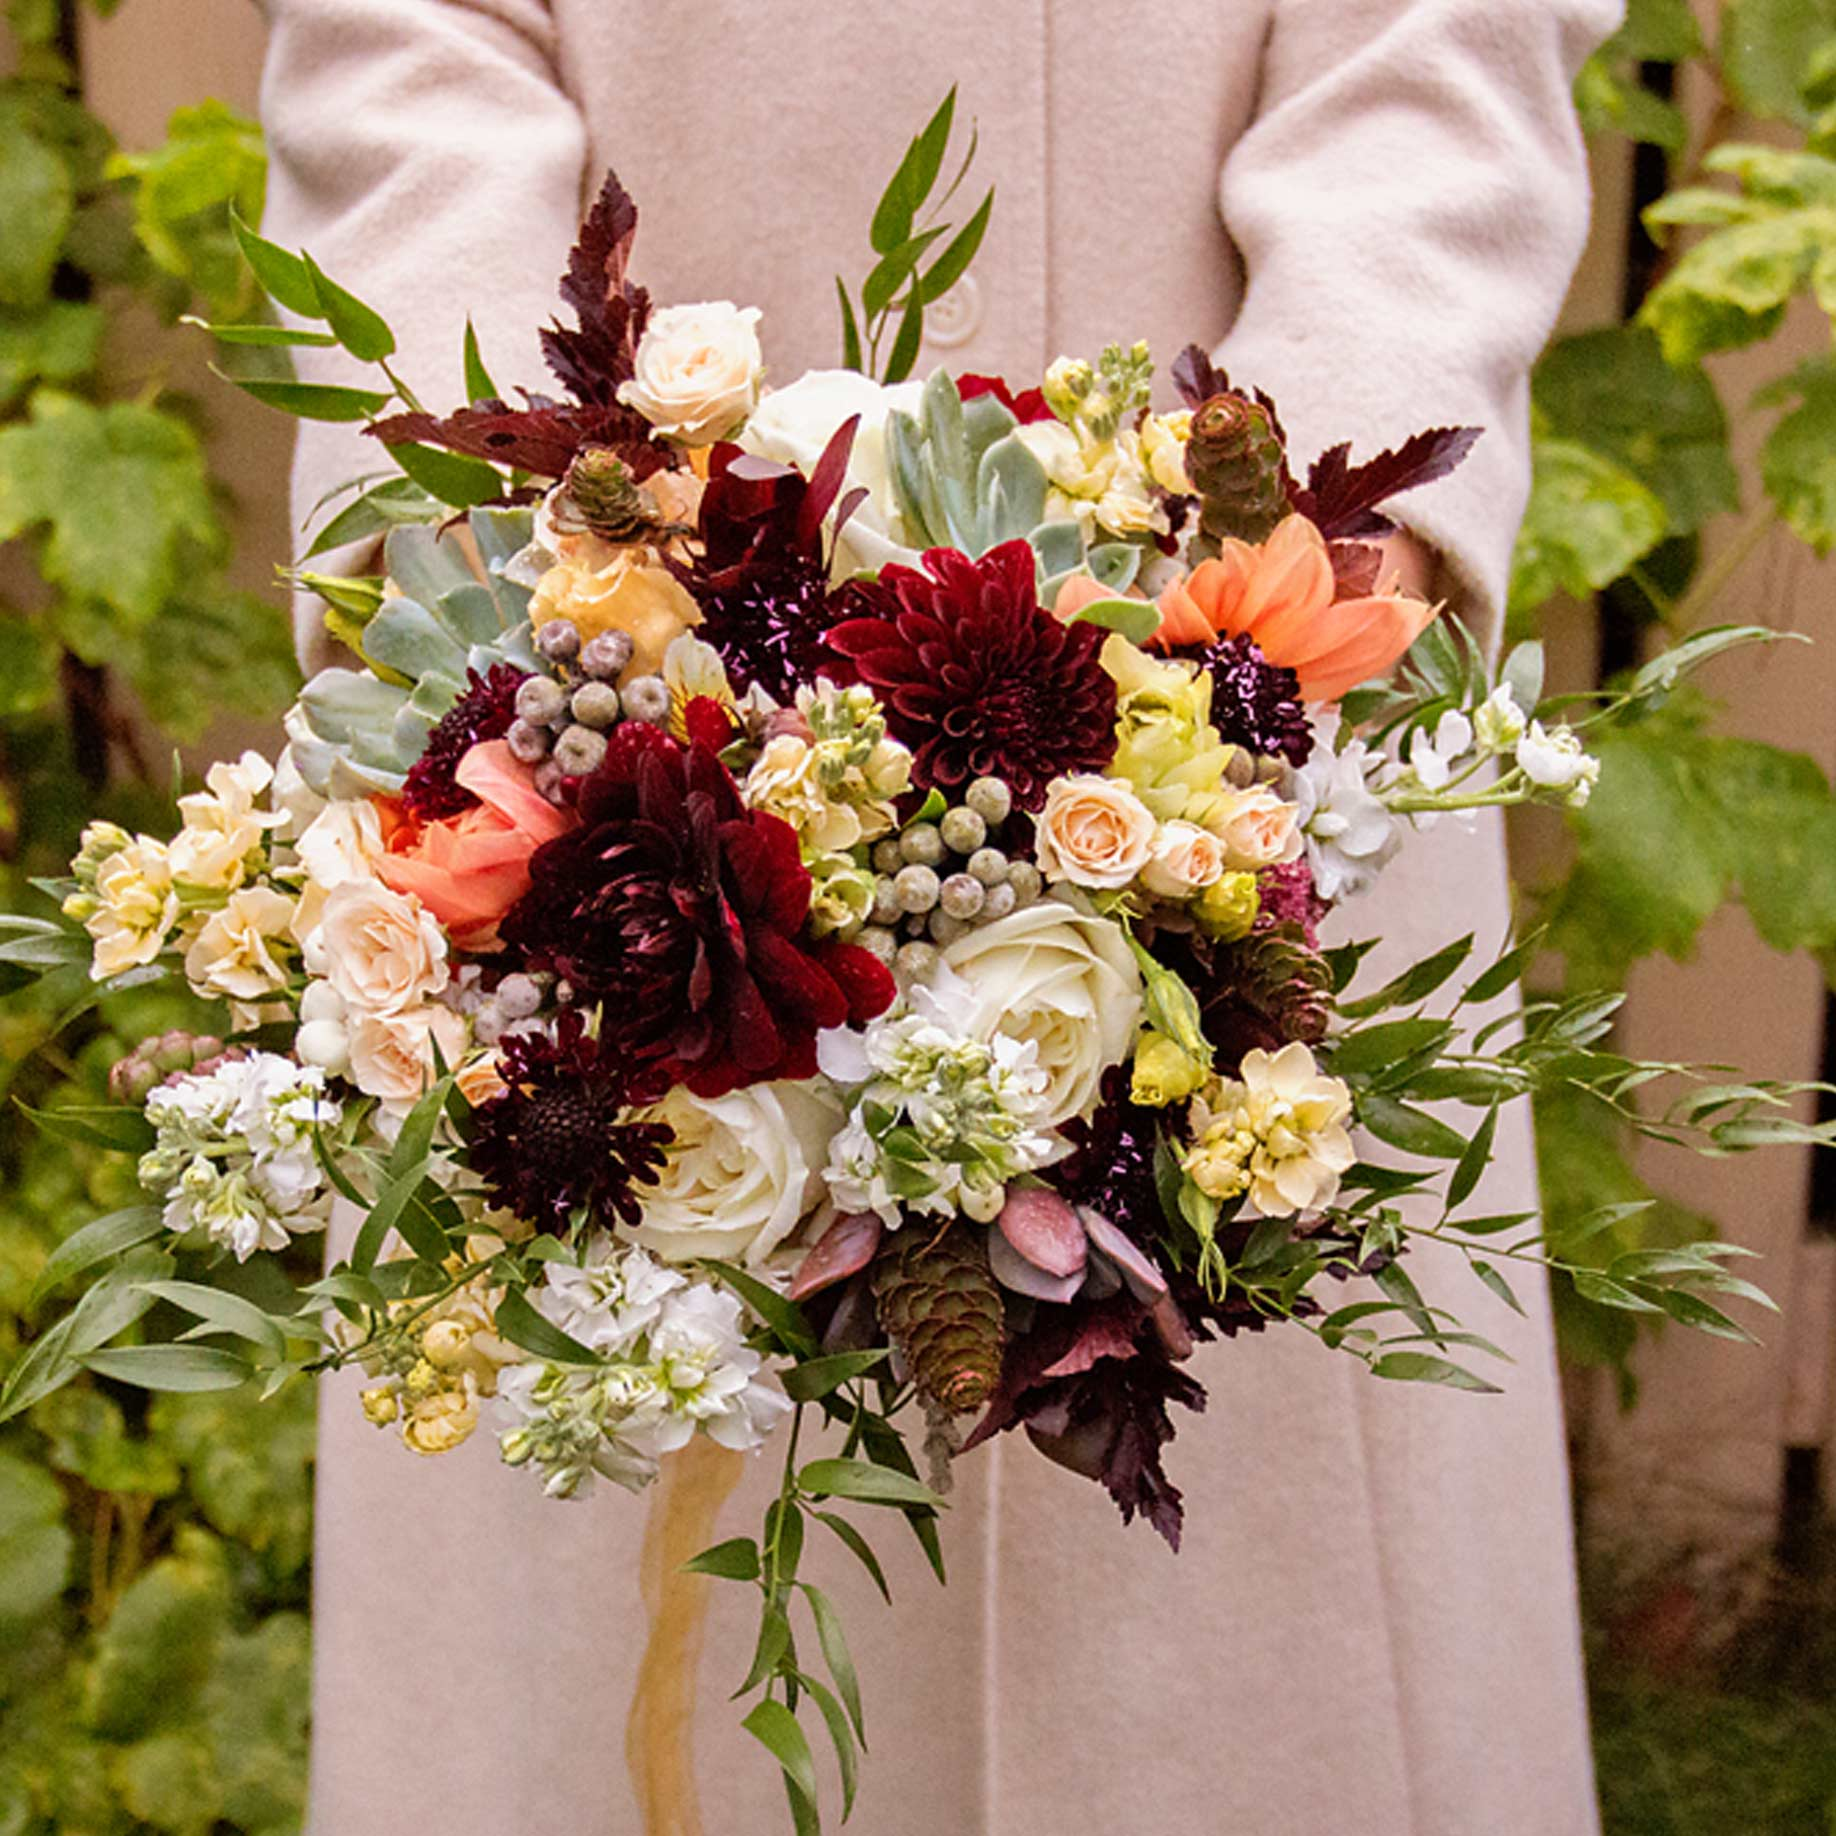 Winter Weddings - Bouquets, Corsages, and more